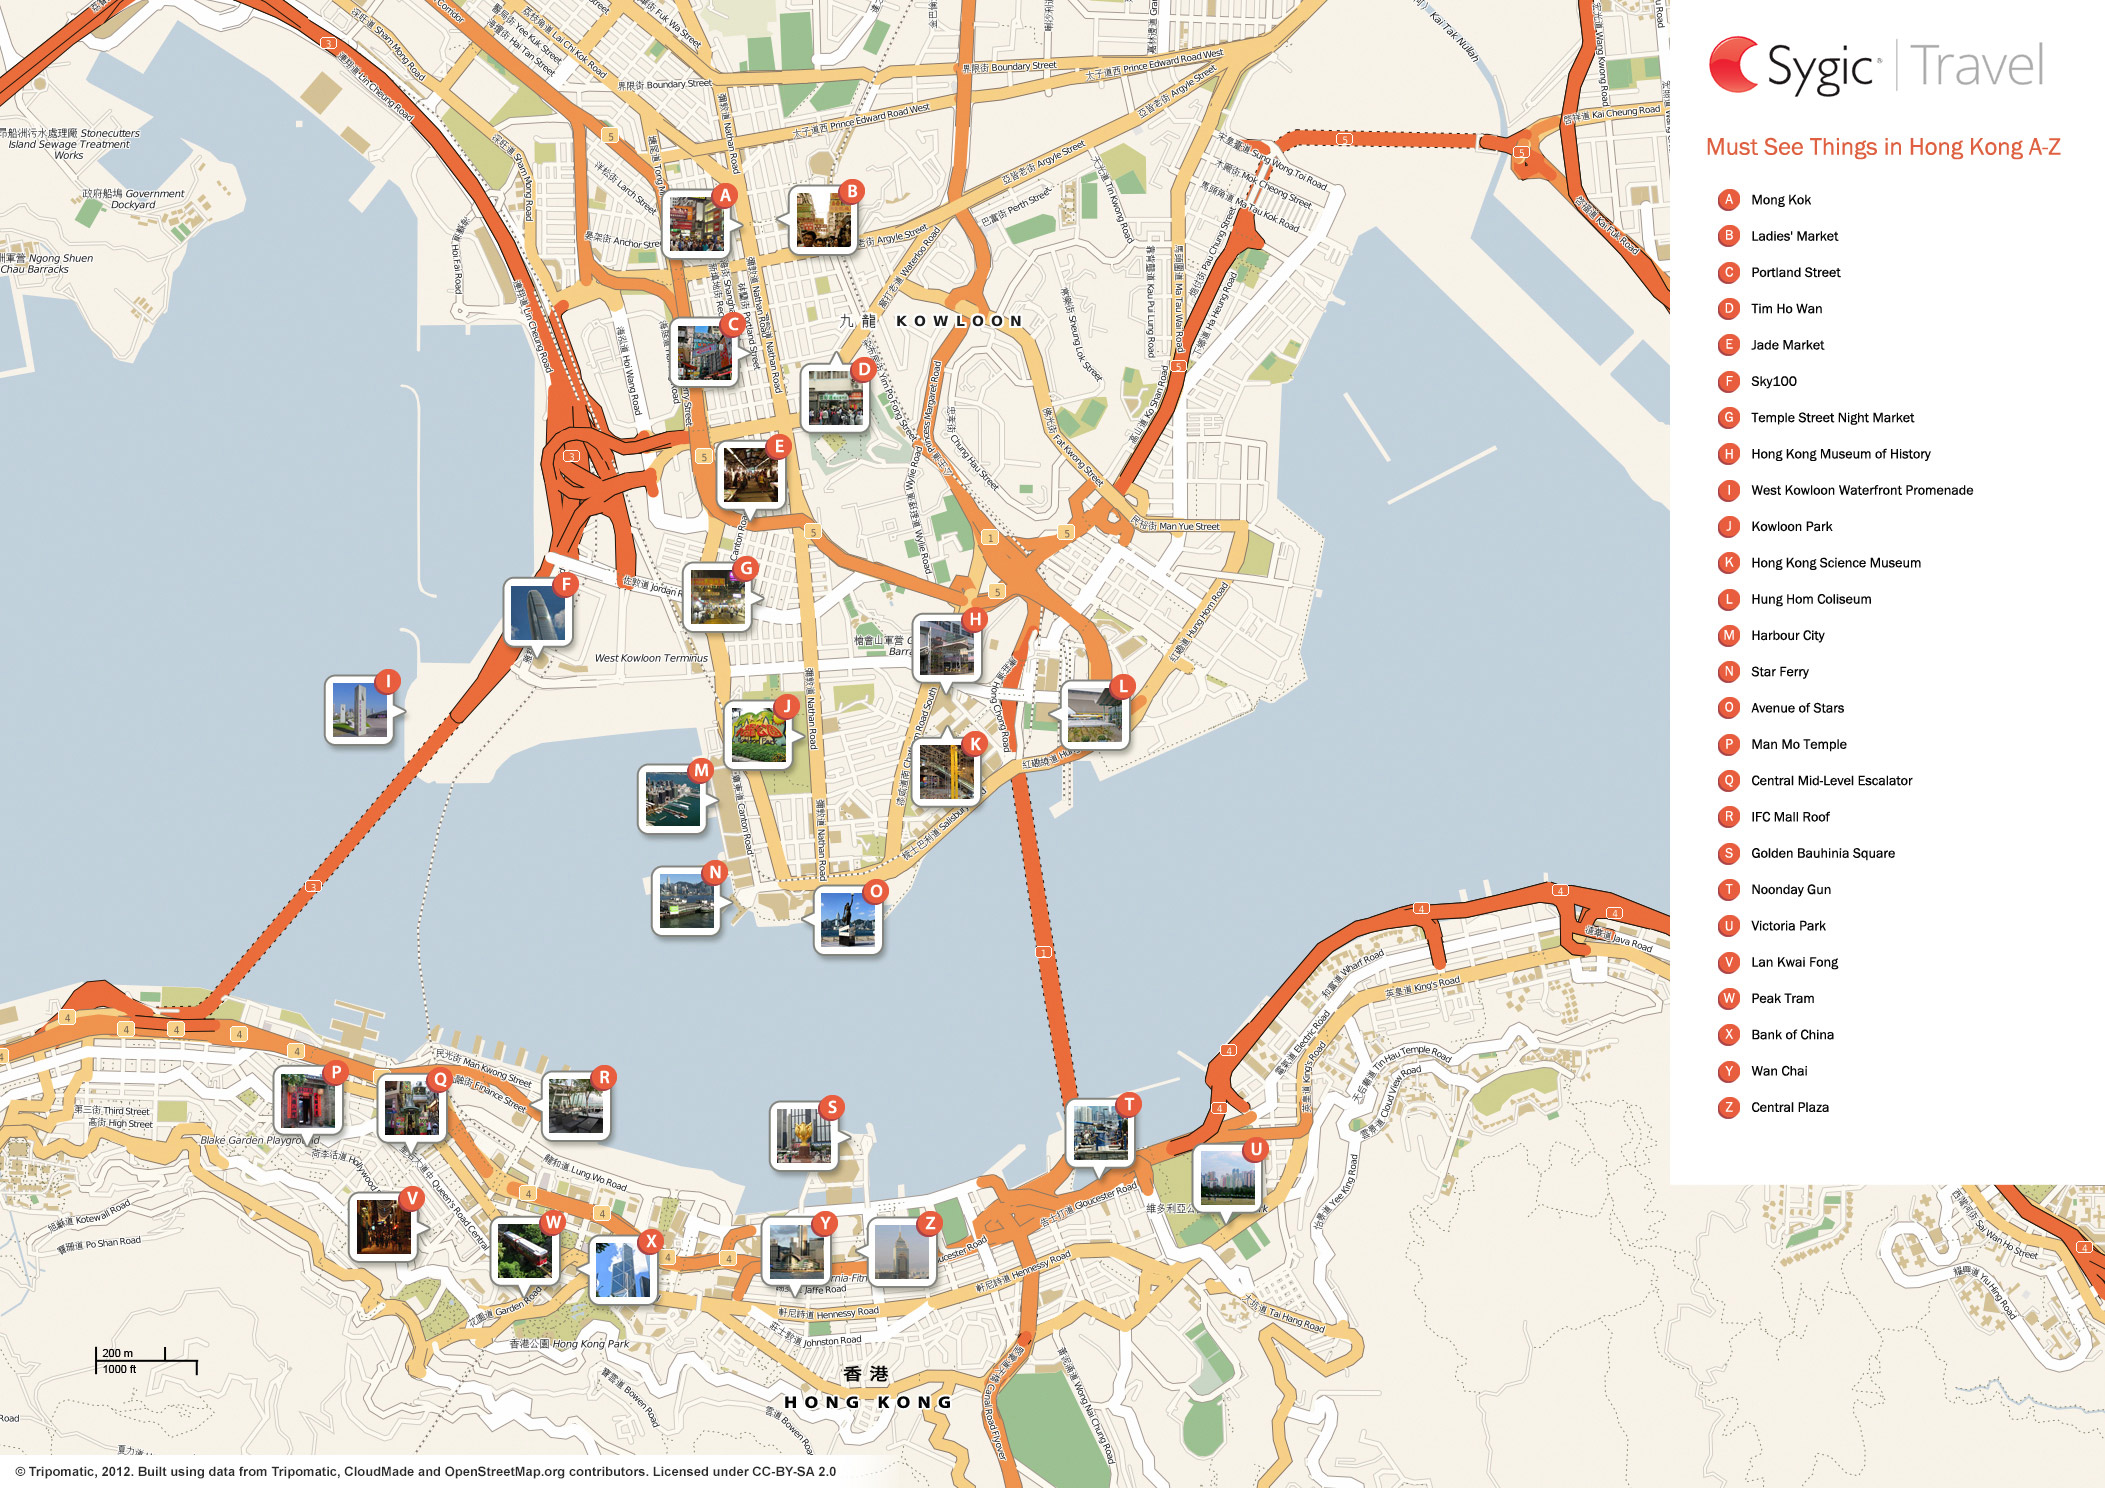 Complete Hong Kong Travel Map for Tourists Guidance – Hong Kong Map For Tourist